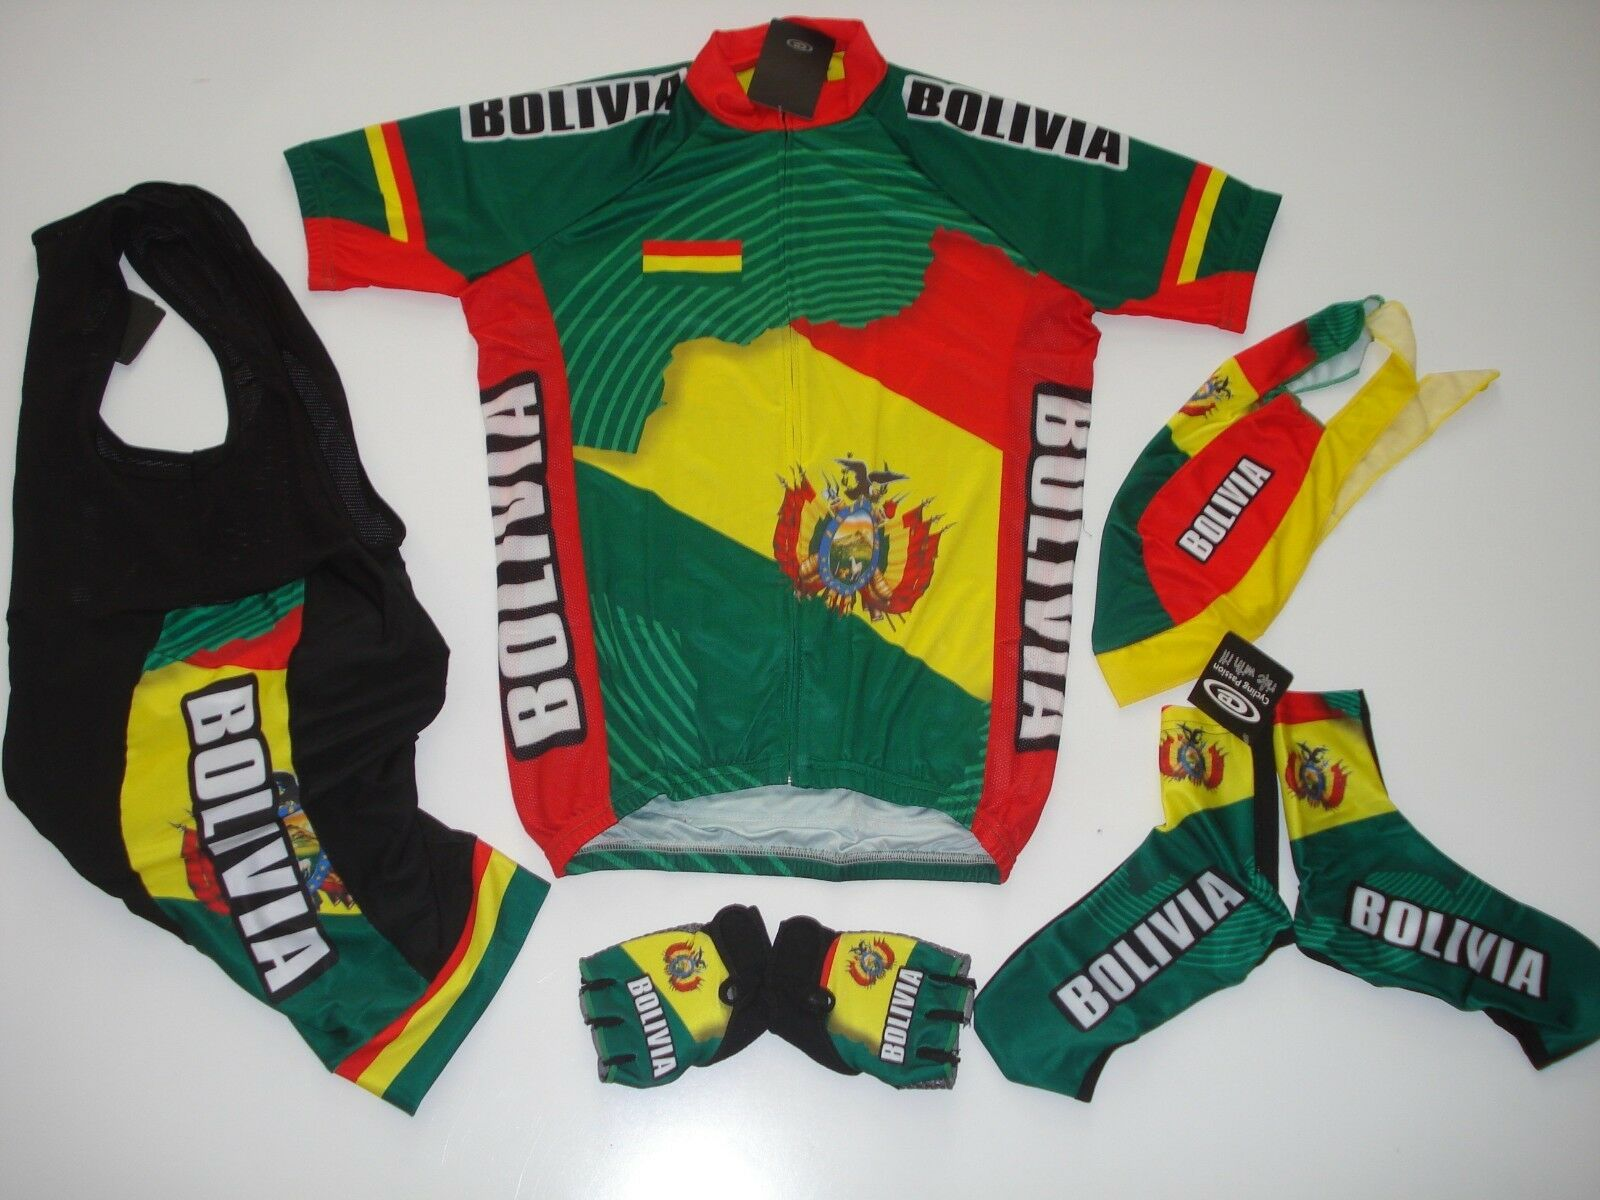 New size L - BOLIVIA Team Cycling Flag Road  Bike Set Jersey Bib Shorts G s +  high-quality merchandise and convenient, honest service